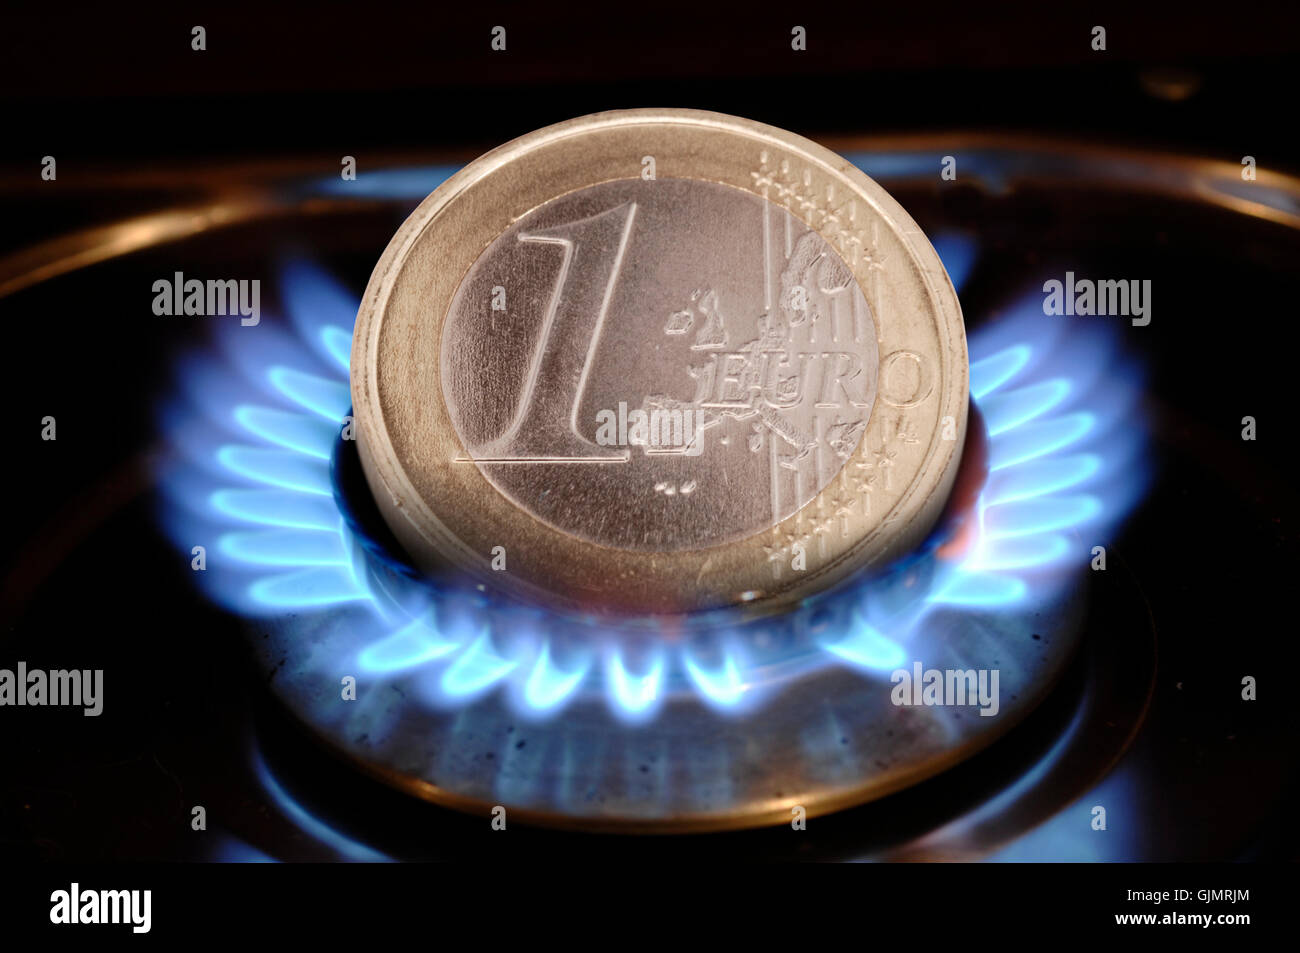 euro costs incidental to sth. energy costs - Stock Image